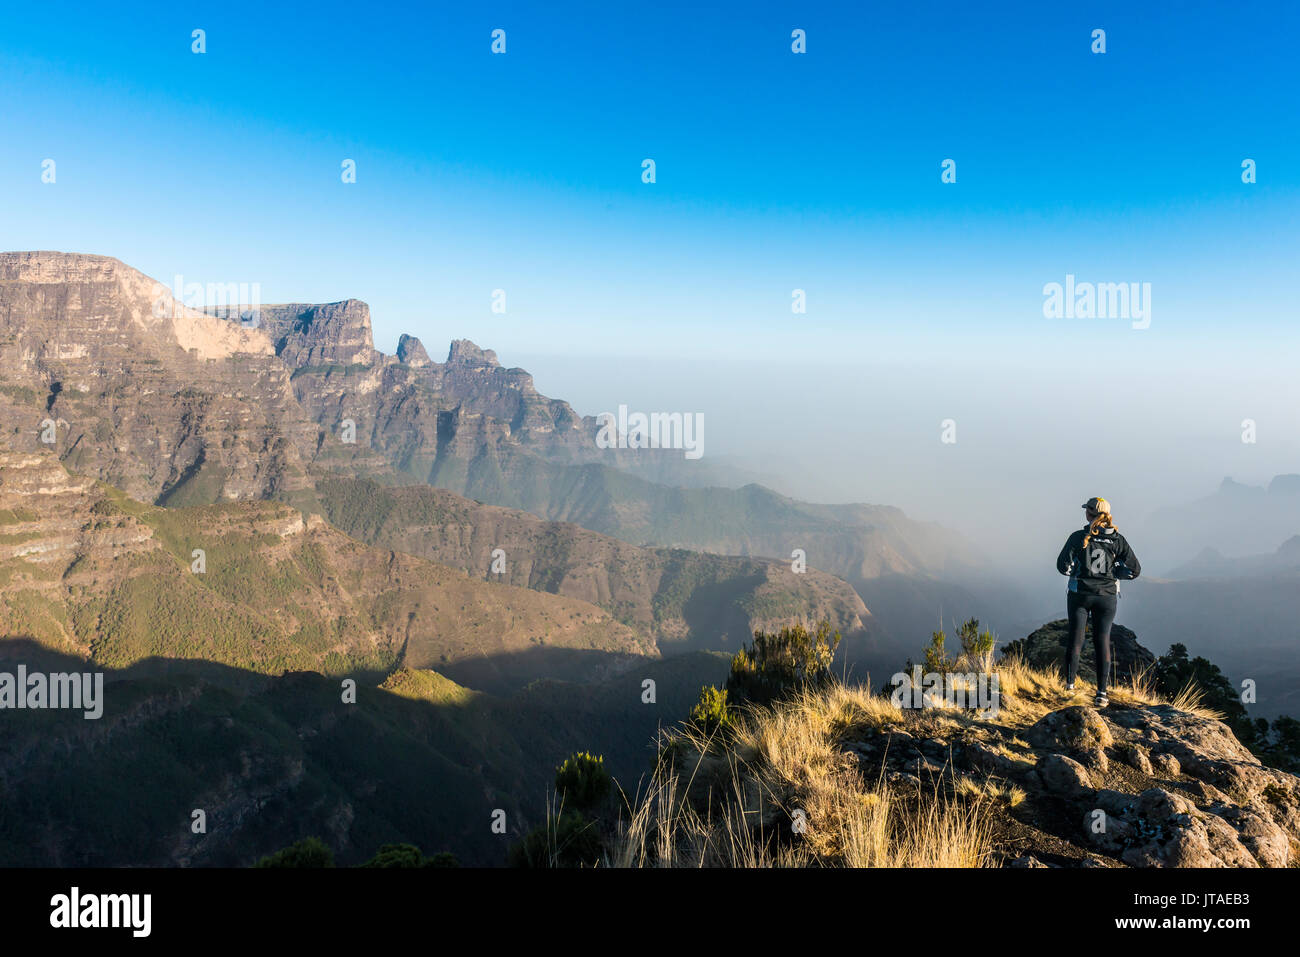 Woman enjoying the early morning sun on the cliffs, Simien Mountains National Park, UNESCO, Debarq, Ethiopia, Africa - Stock Image